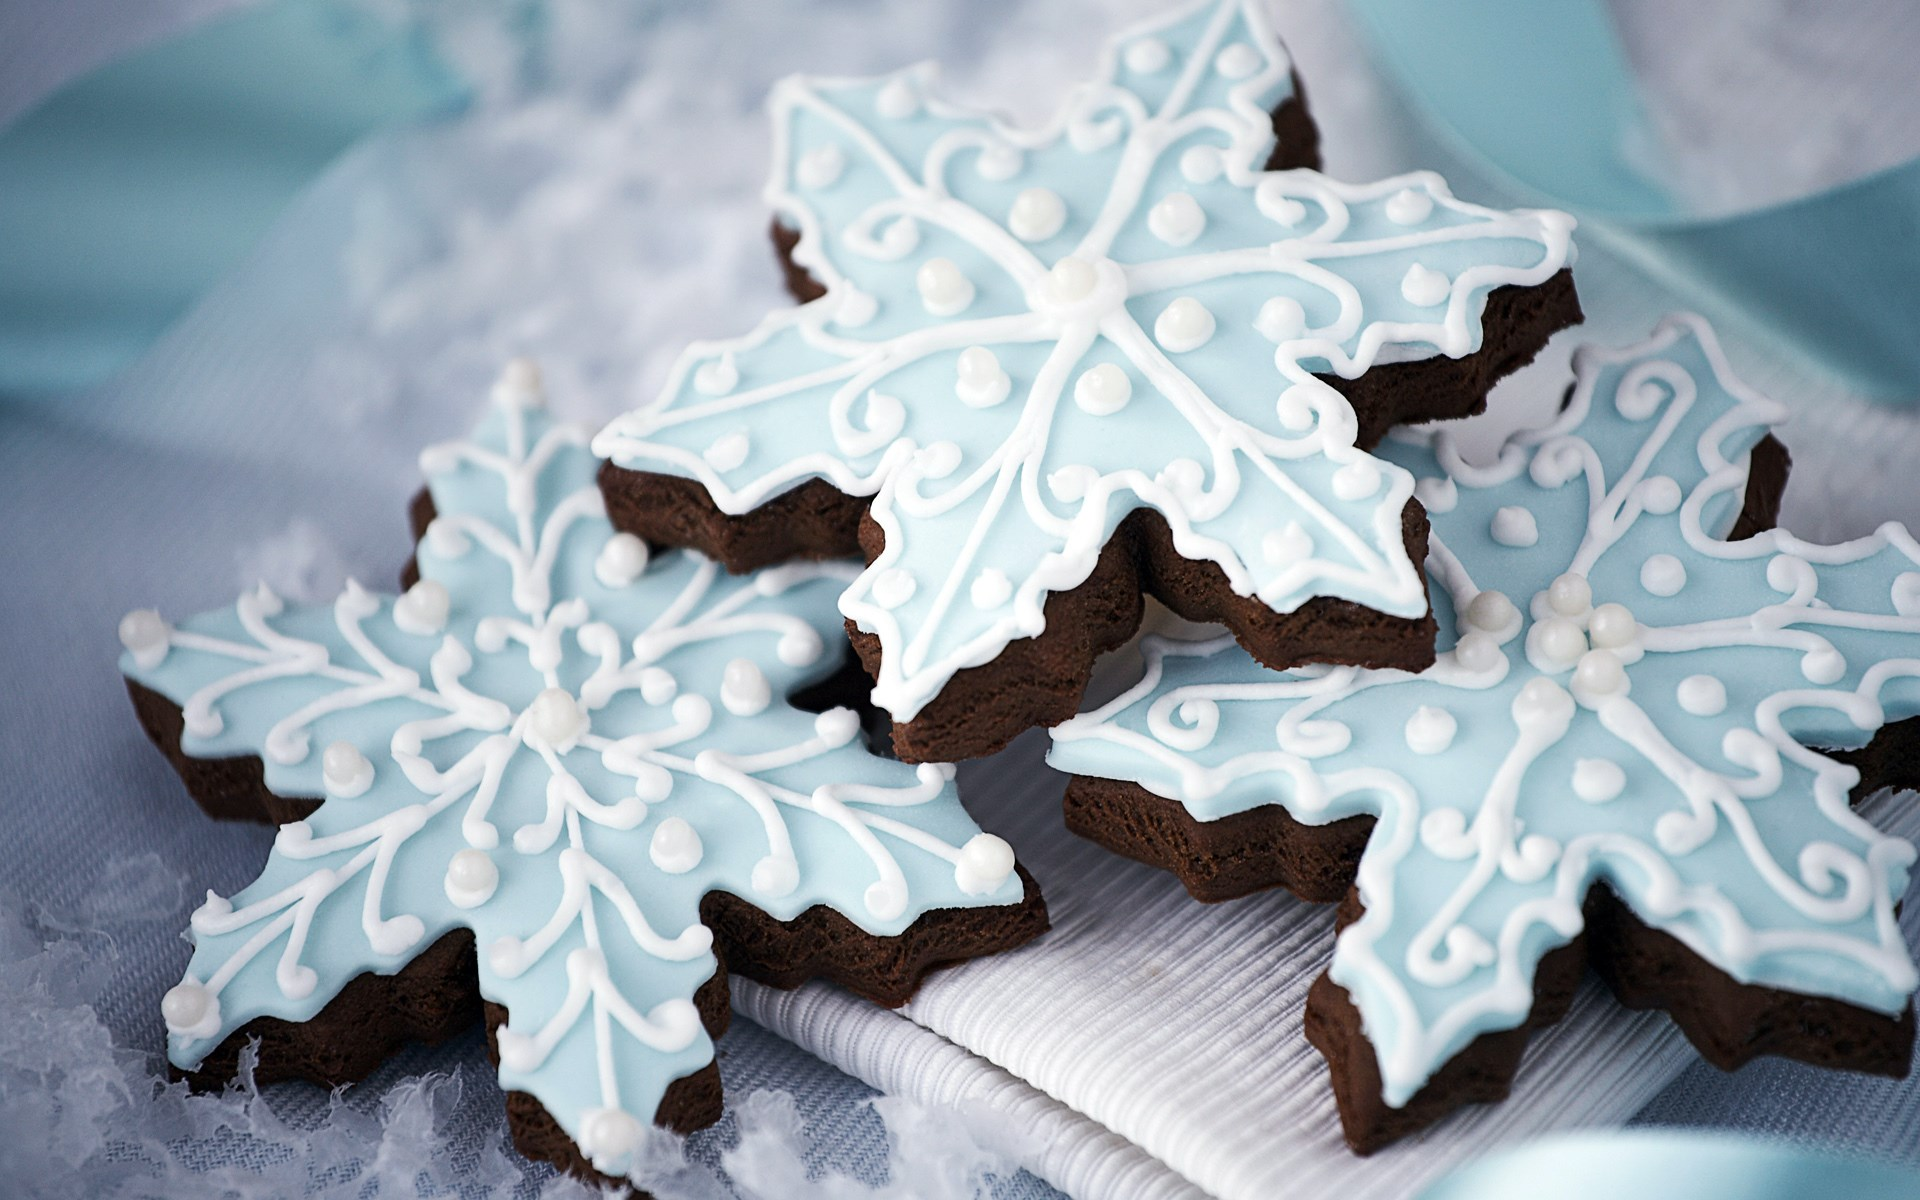 Cookies Snowflakes Dessert Pastry Christmas New Year